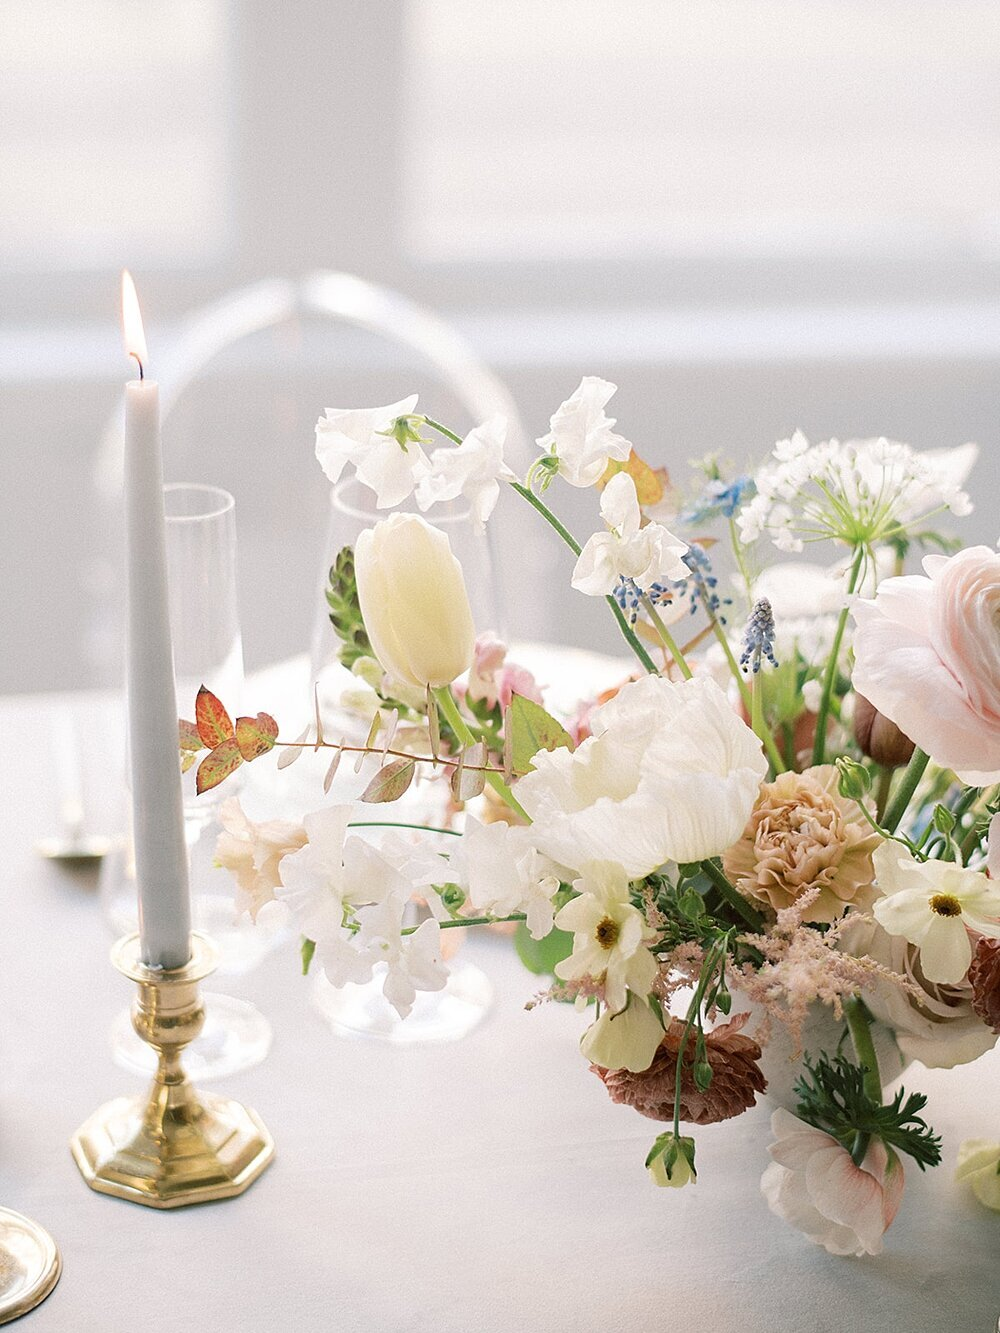 Modern-love-event-leigh-and-mitchell-spring-wedding-reception-centerpices-sweetpeas-tulips-and-anemones